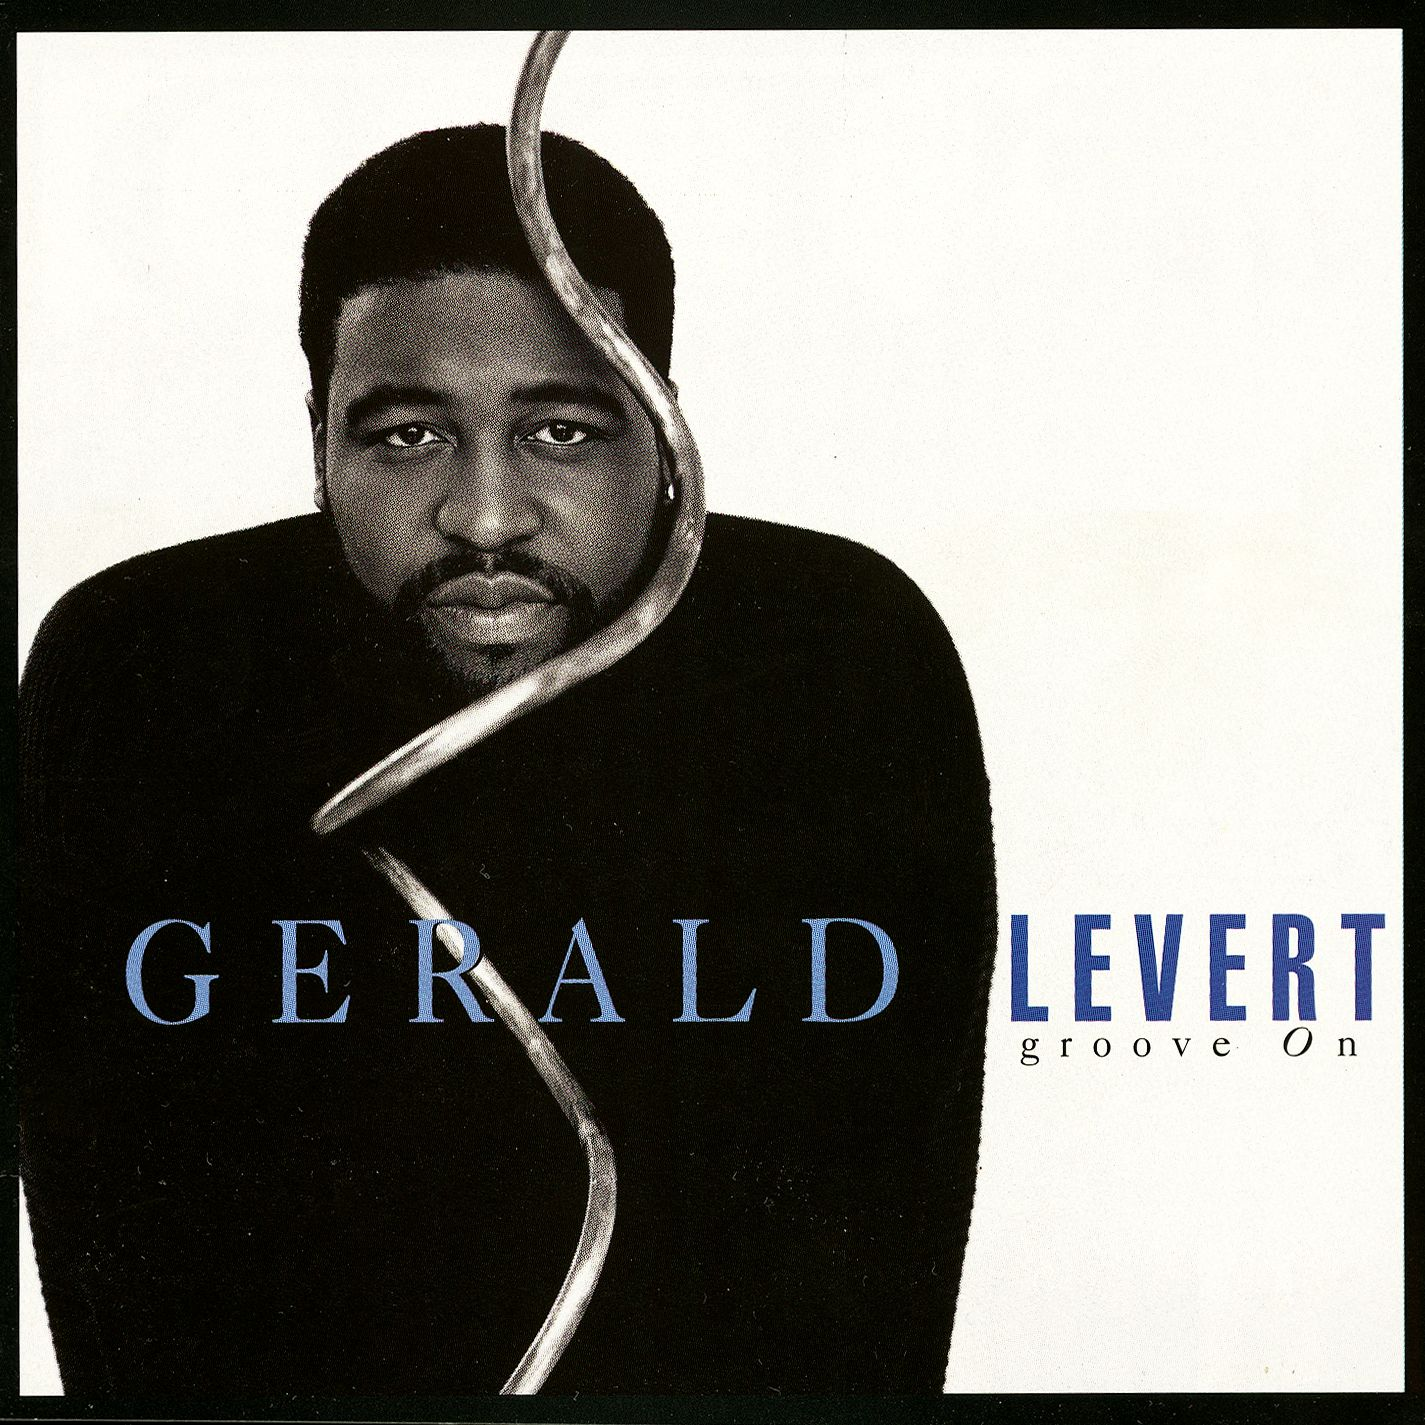 Gerald Levert Songs for listen free to gerald levert - answering service radio   iheartradio